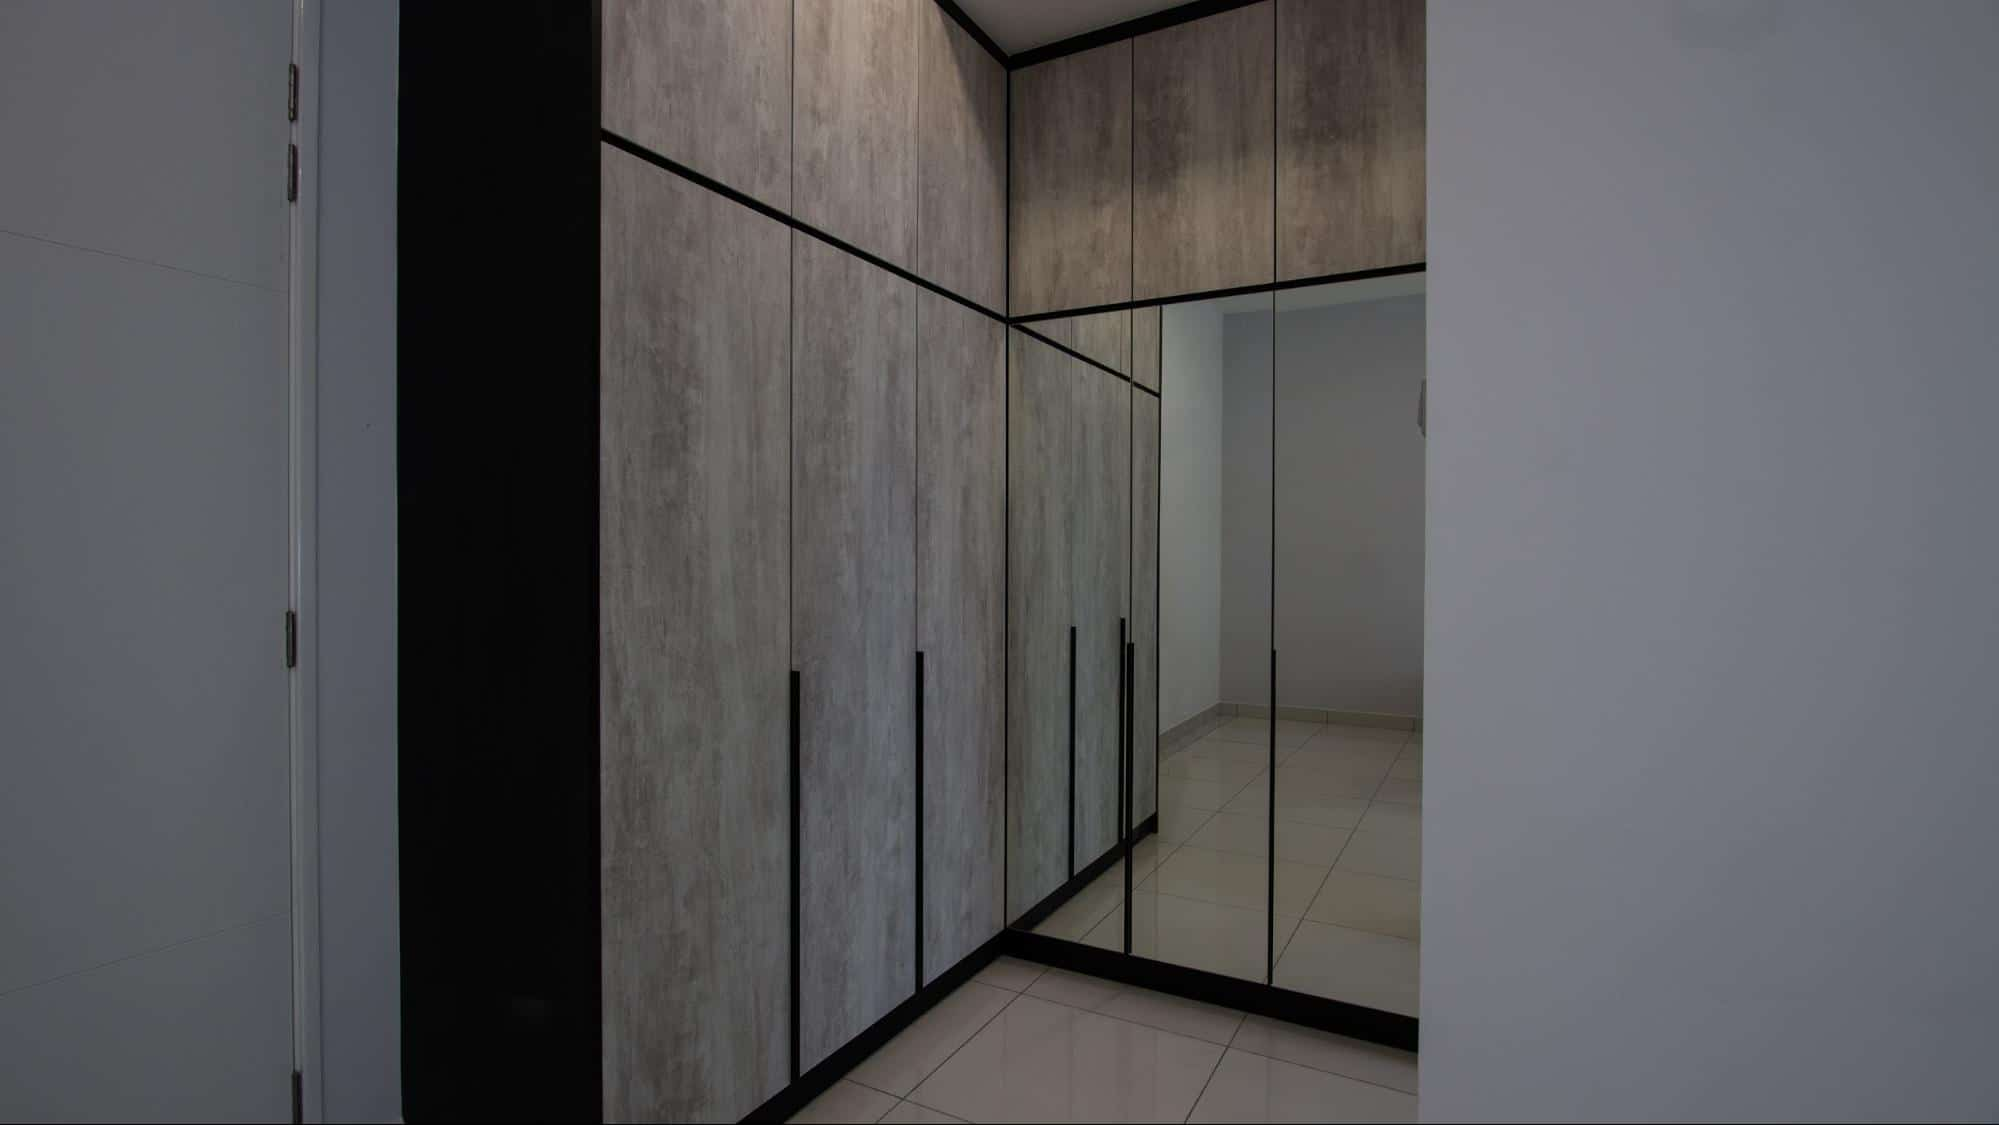 Built-in cabinetry with full length mirrors